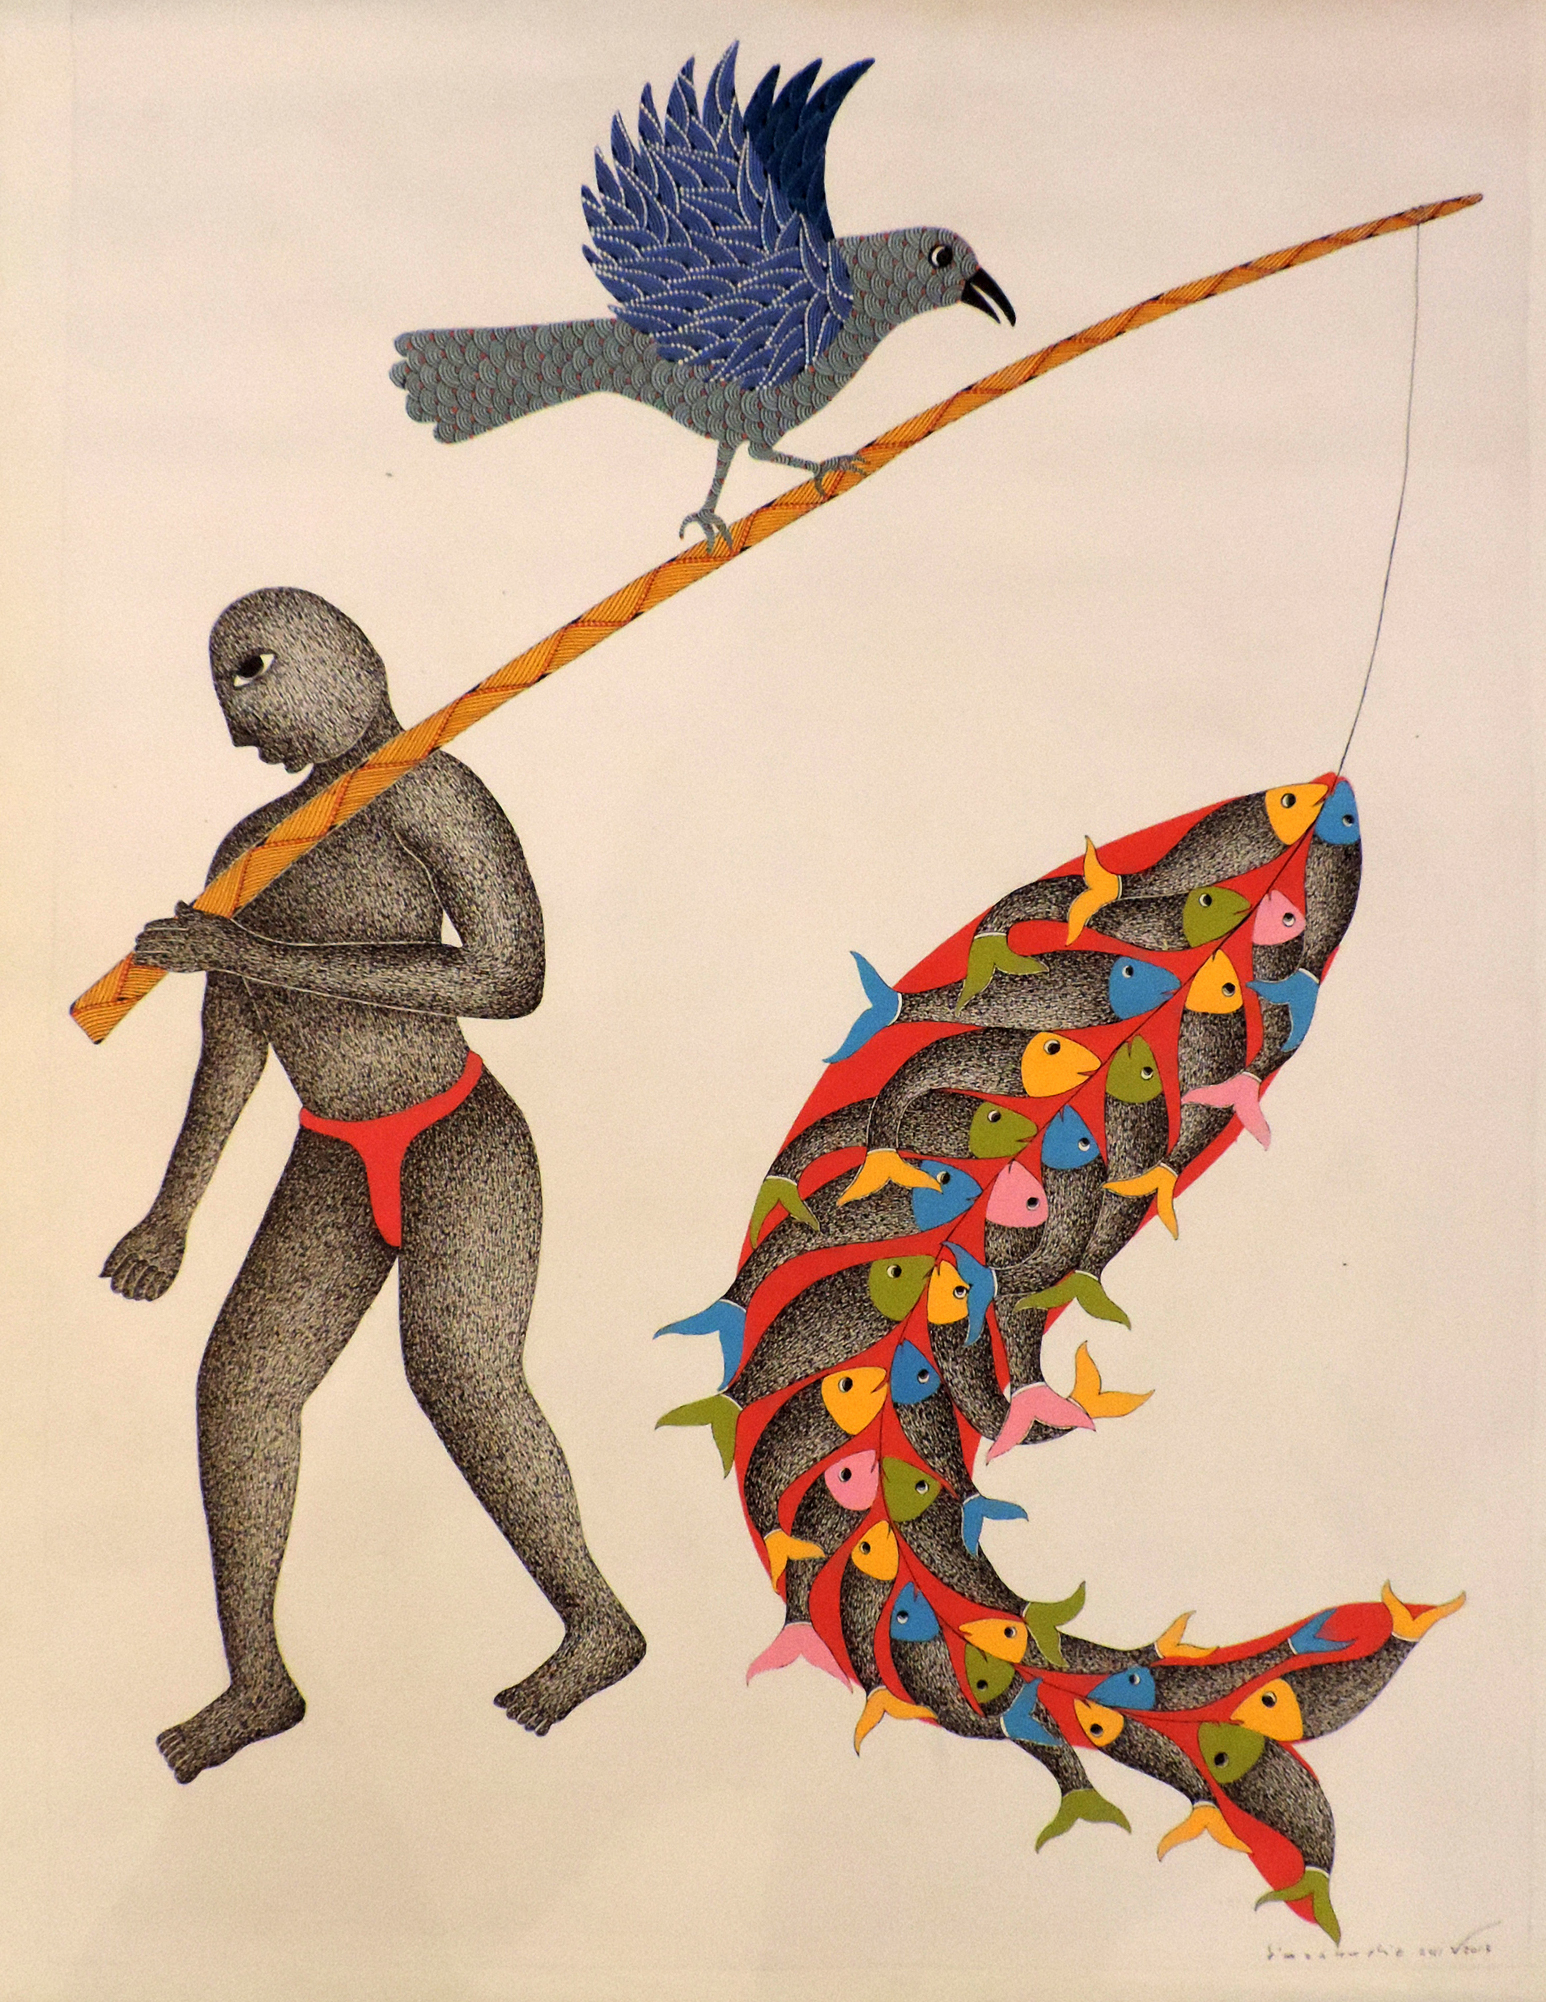 Gond Art | Fisherman by artist Venkat Raman Singh